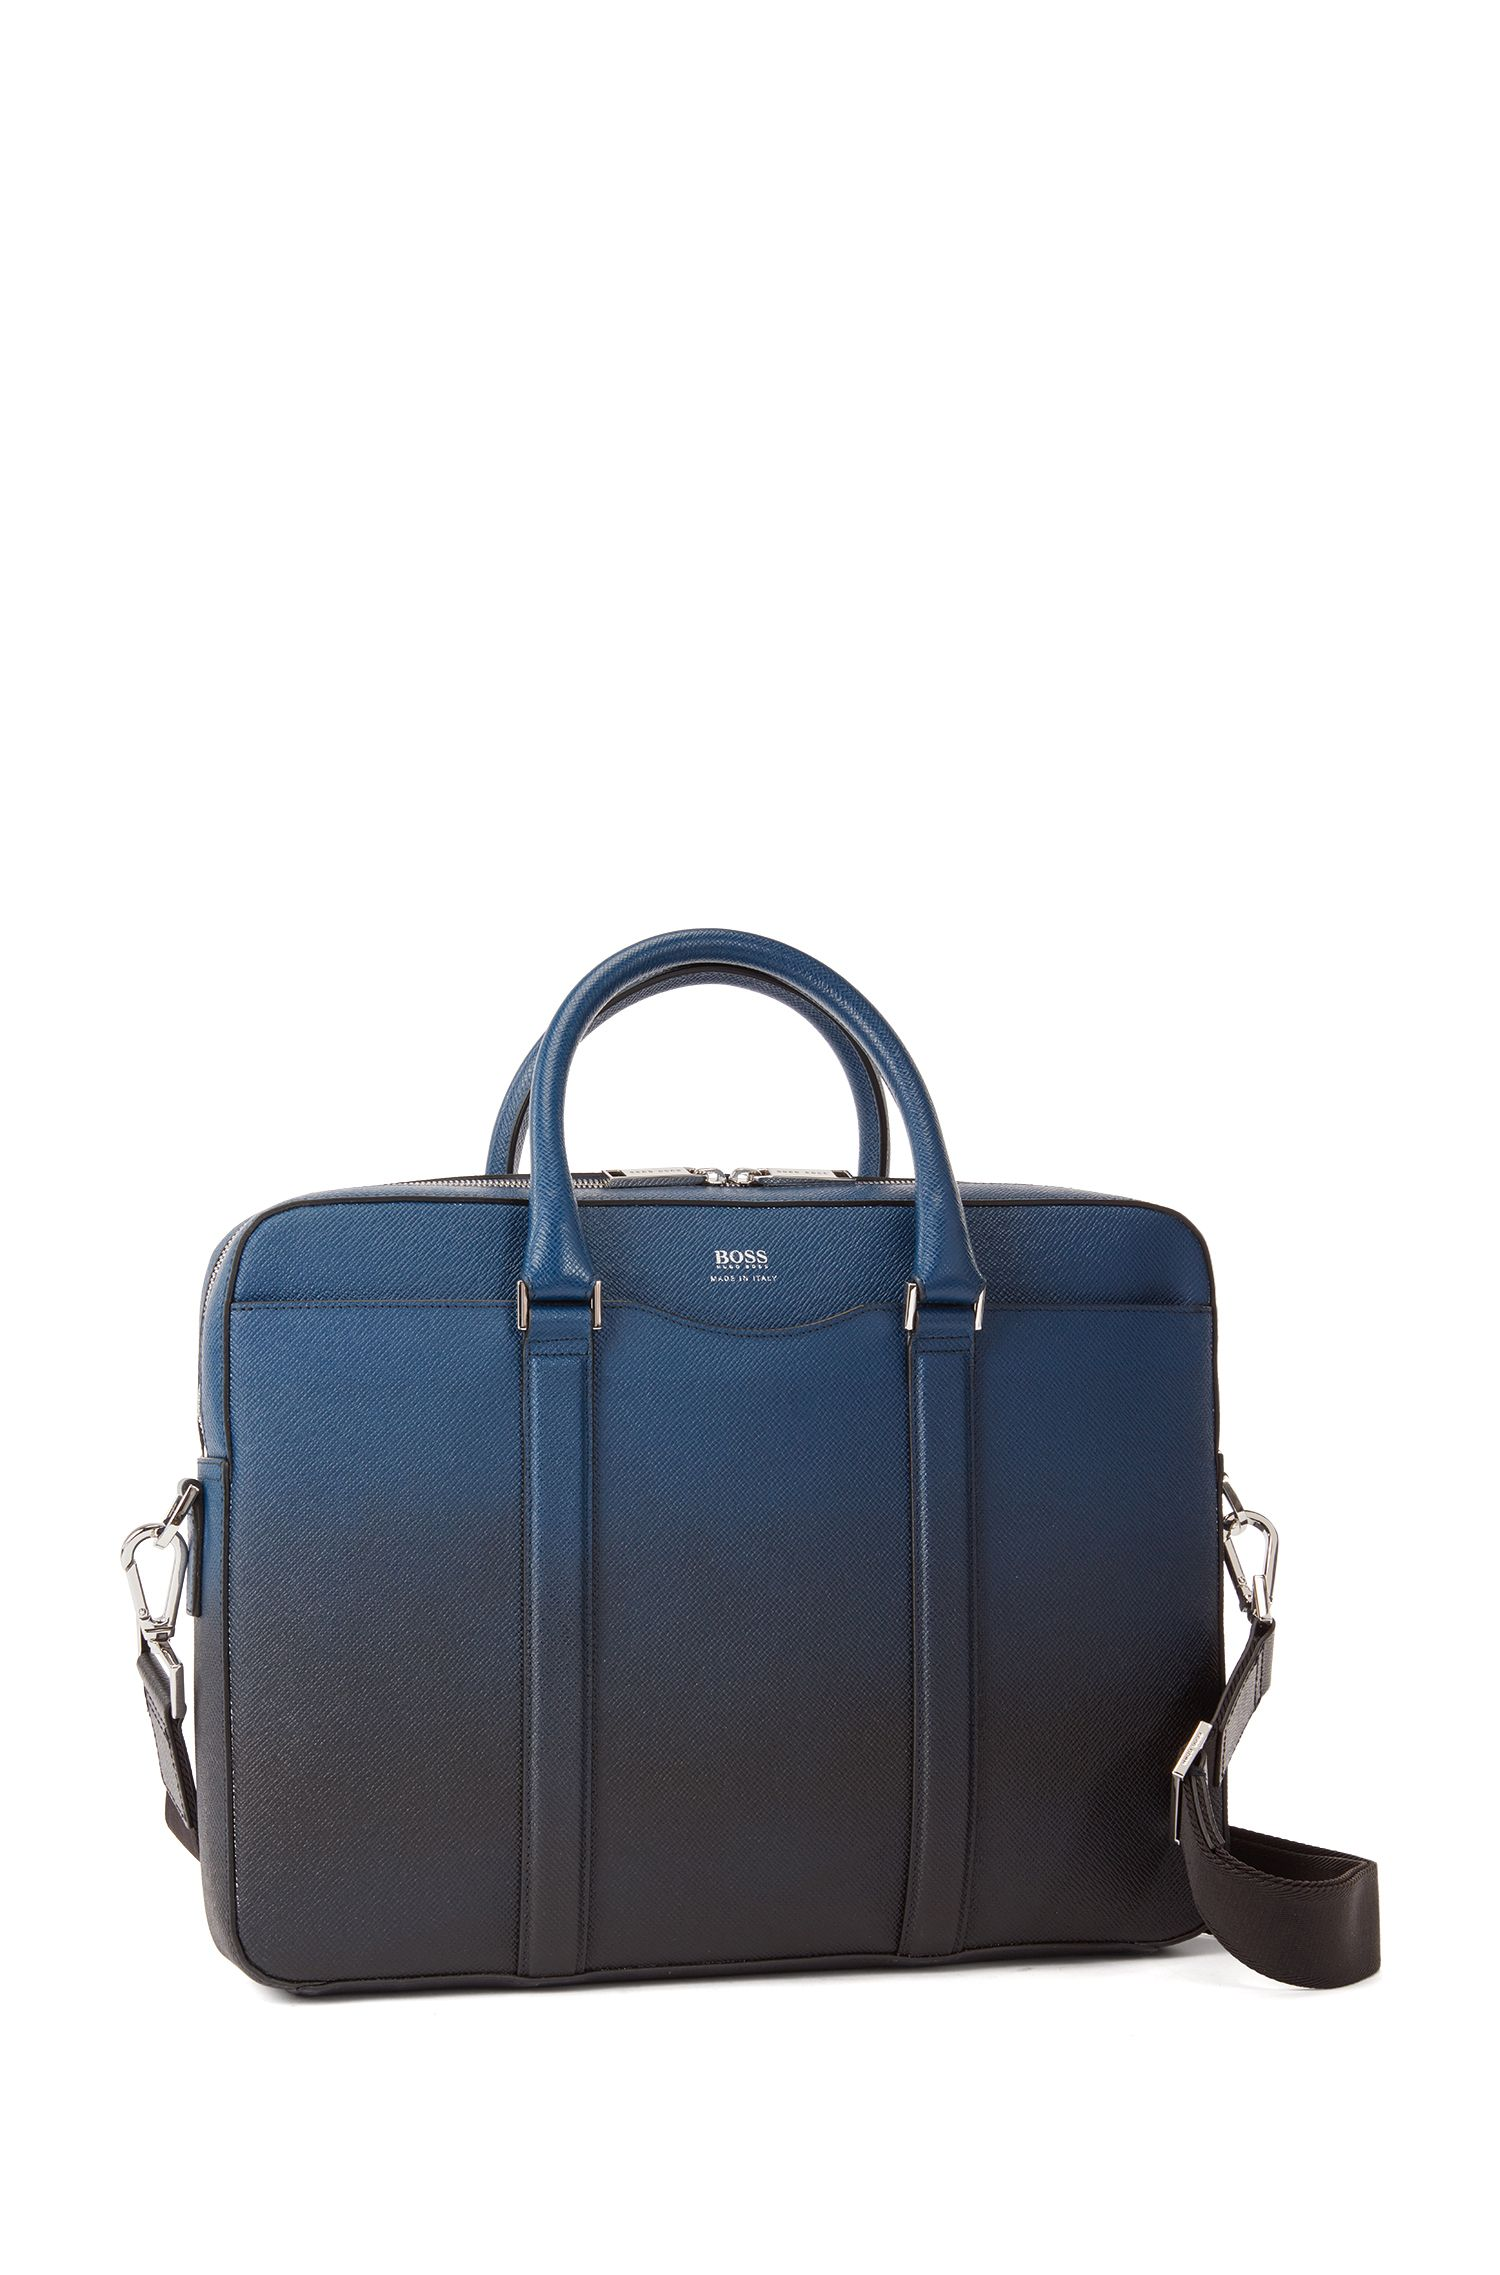 Signature Collection bag in dégradé palmellato leather, Dark Blue